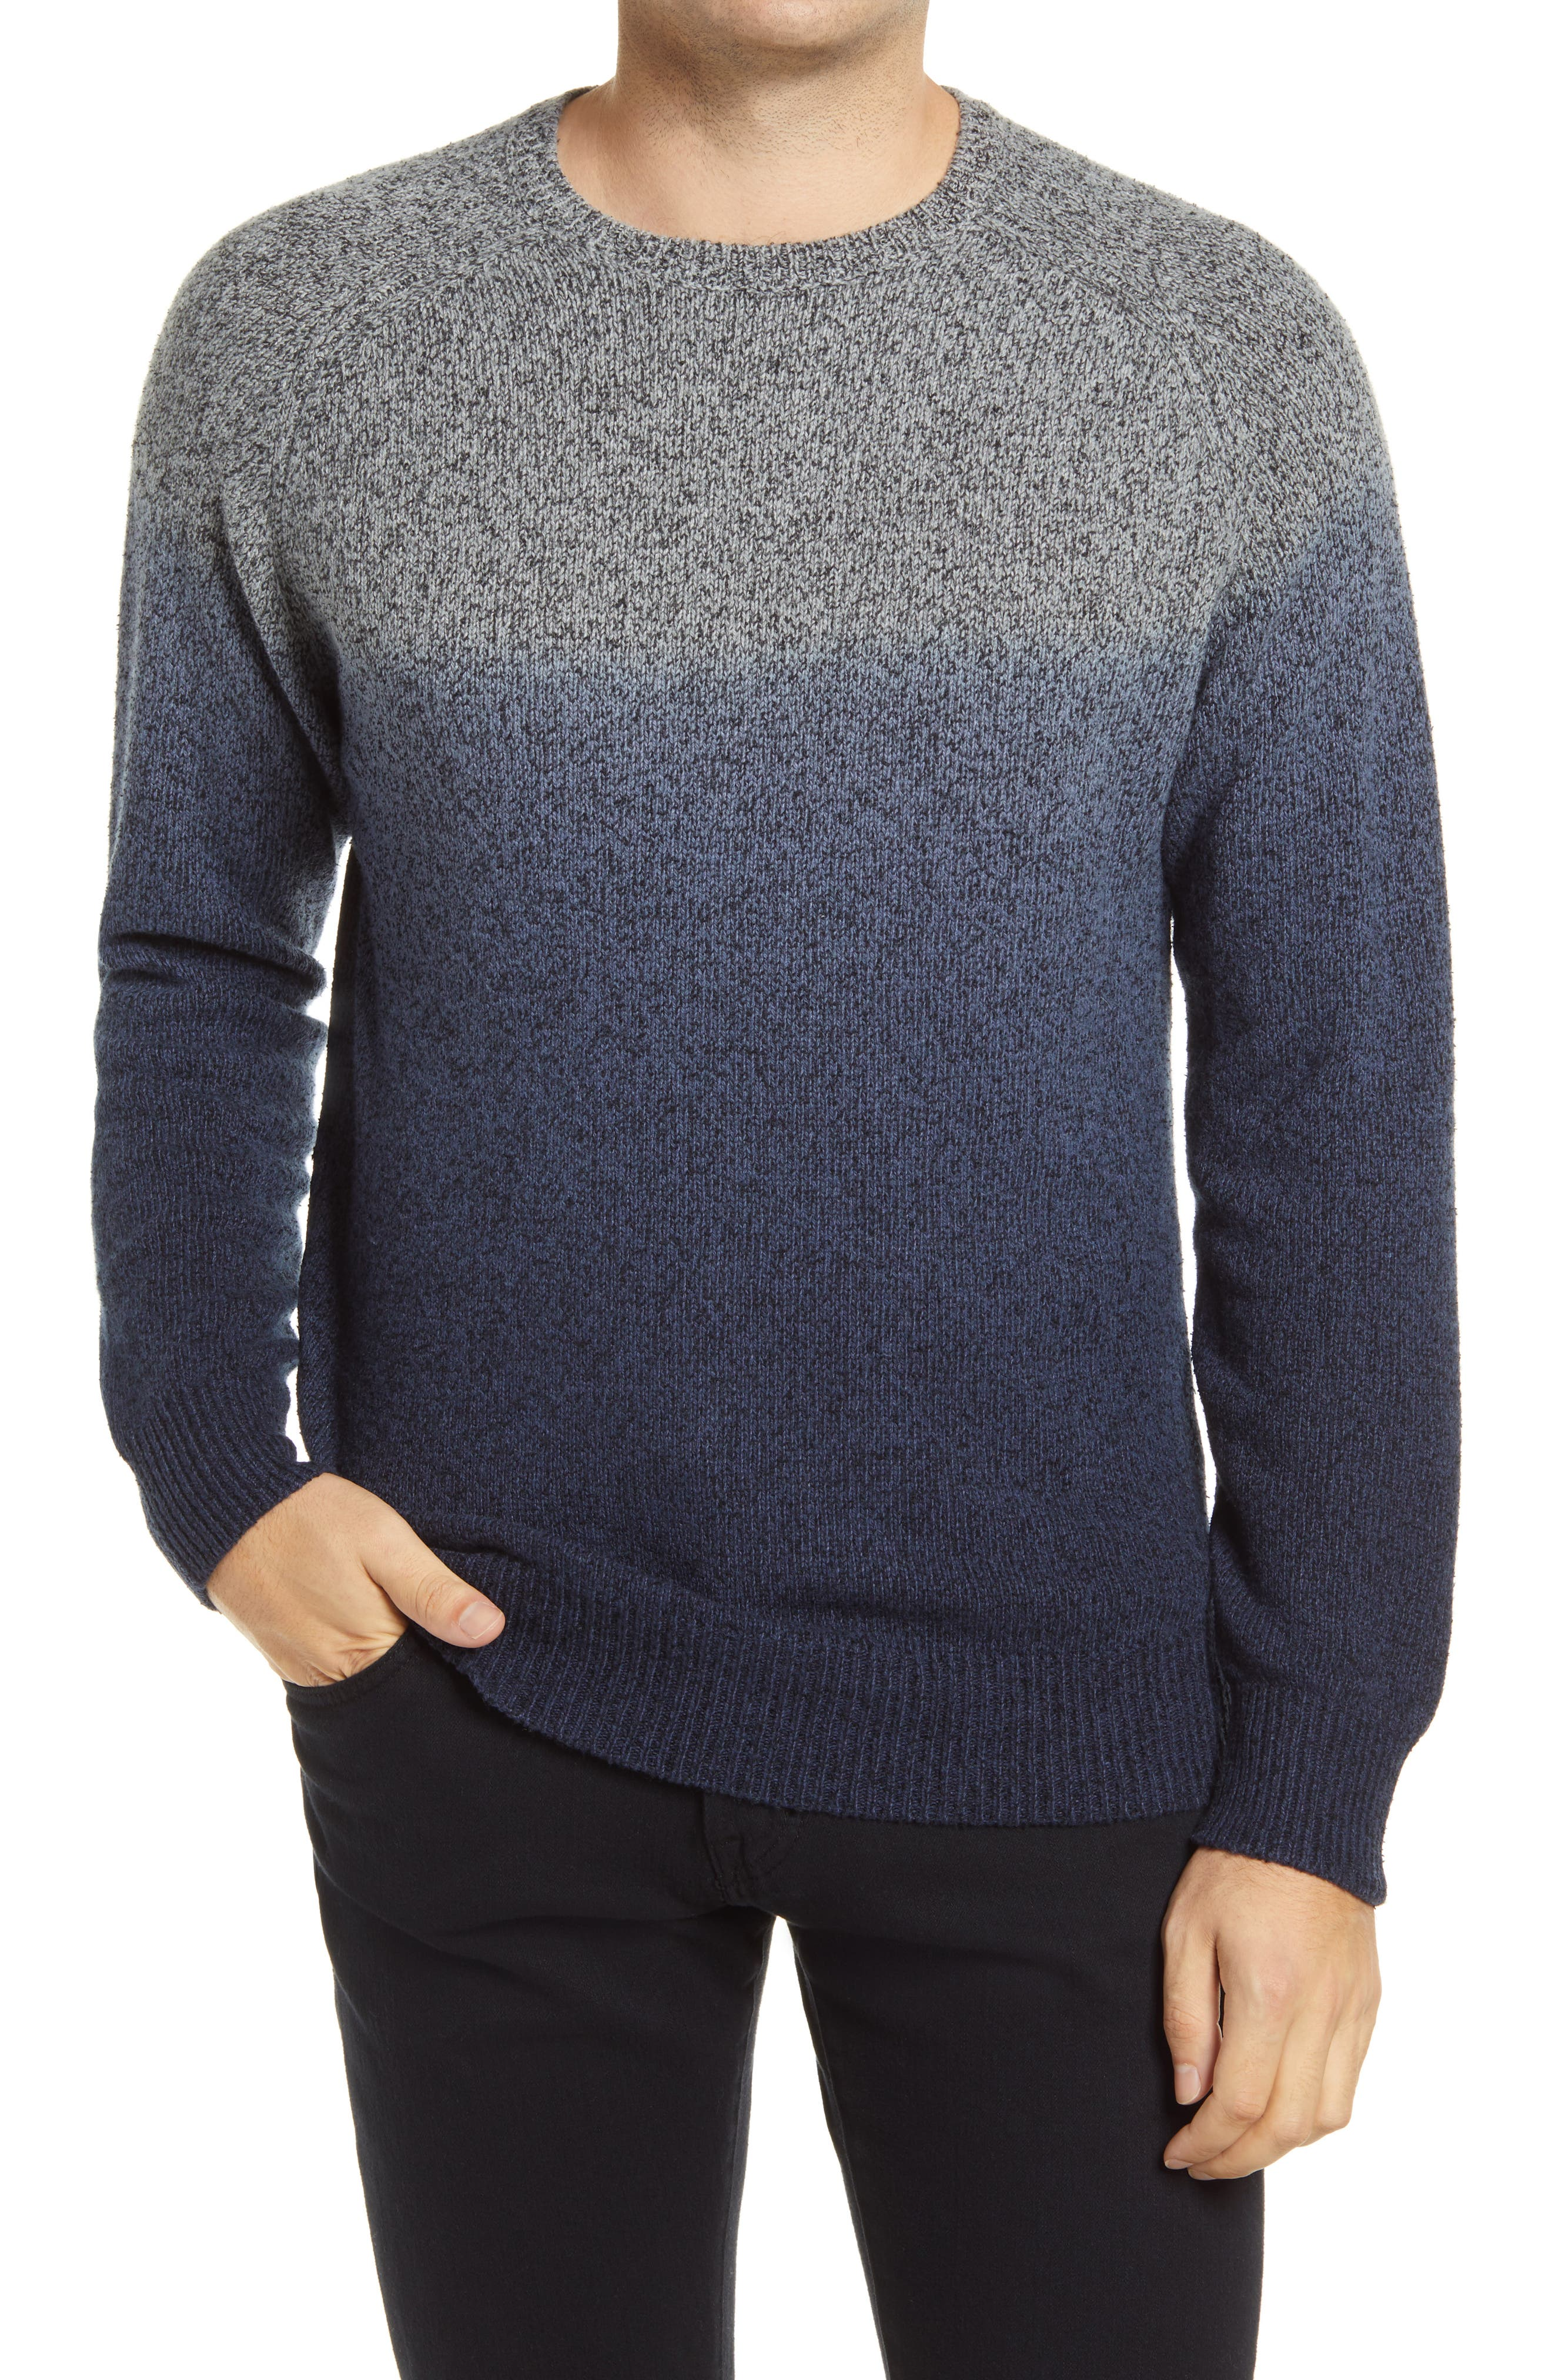 Ombre-inspired dip-dye styles a handsome crewneck sweater knit from rich wool-blend yarn. Style Name: Peter Millar Dip Dye Sweater. Style Number: 6106583. Available in stores.